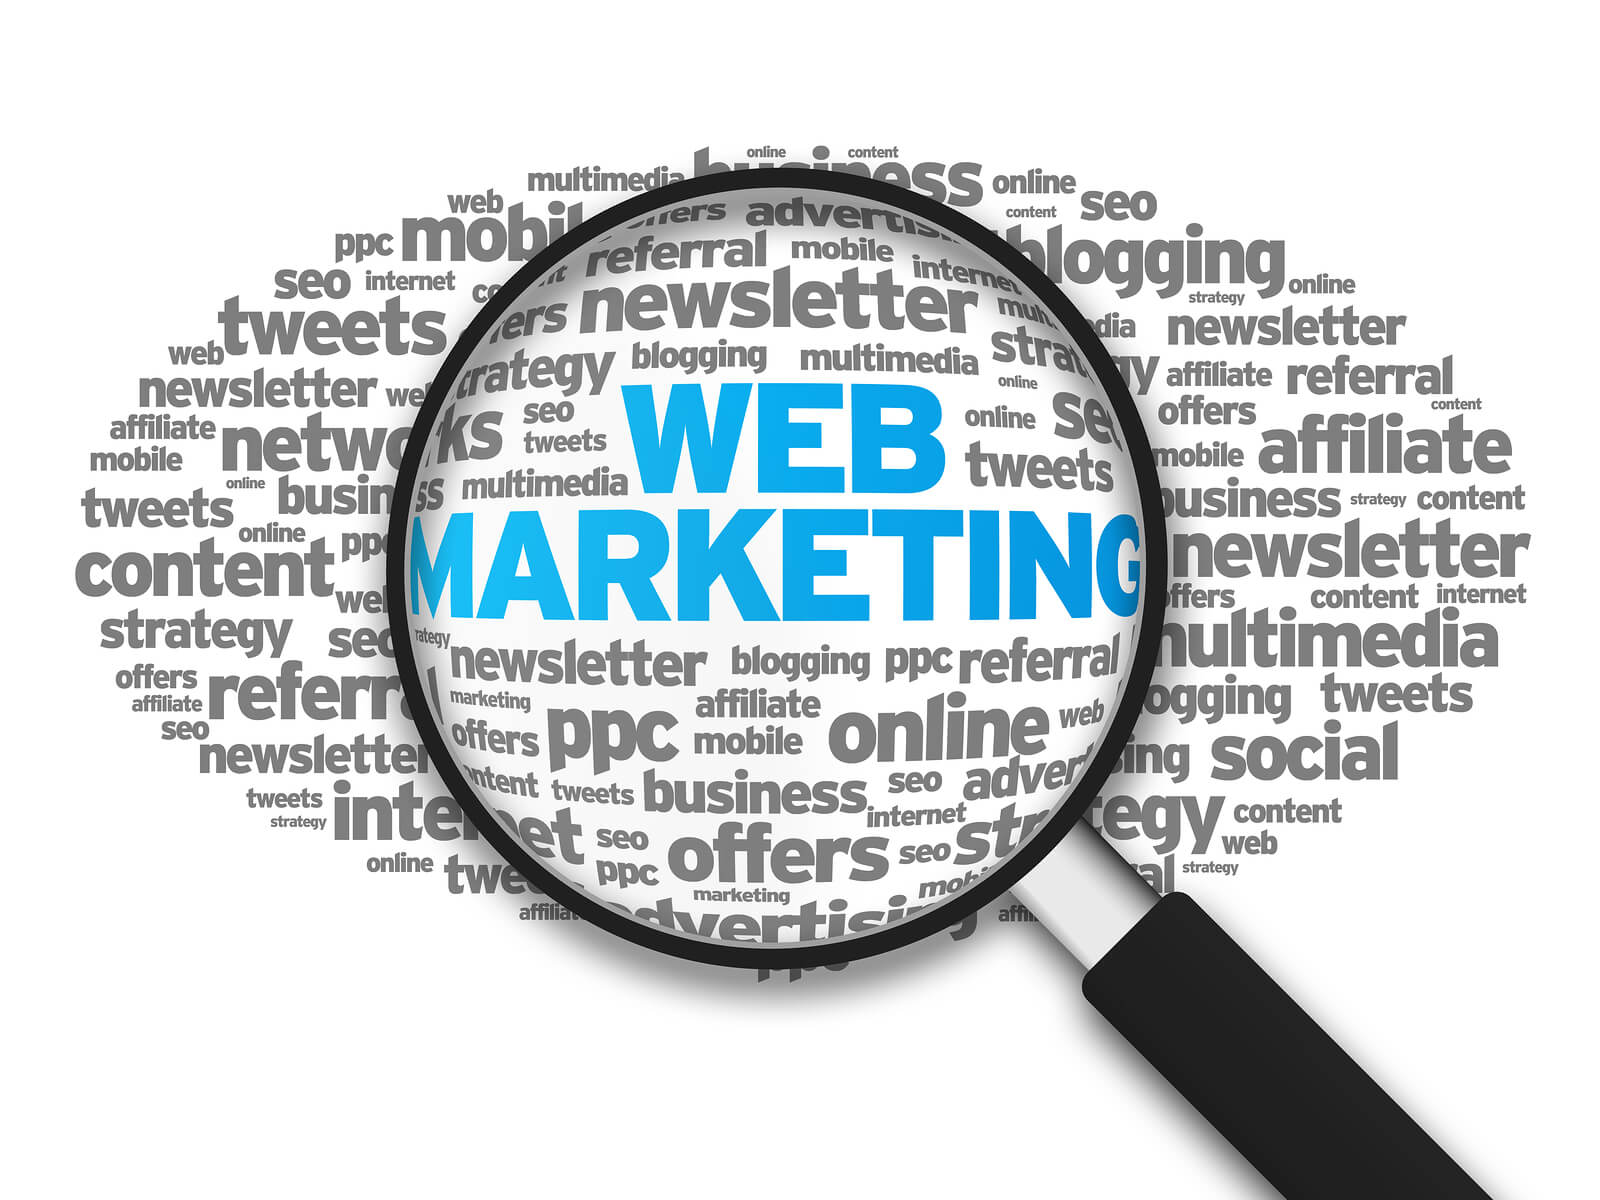 http://axisgmo.com/wp-content/uploads/2012/09/E-Marketing-Solutions.jpg